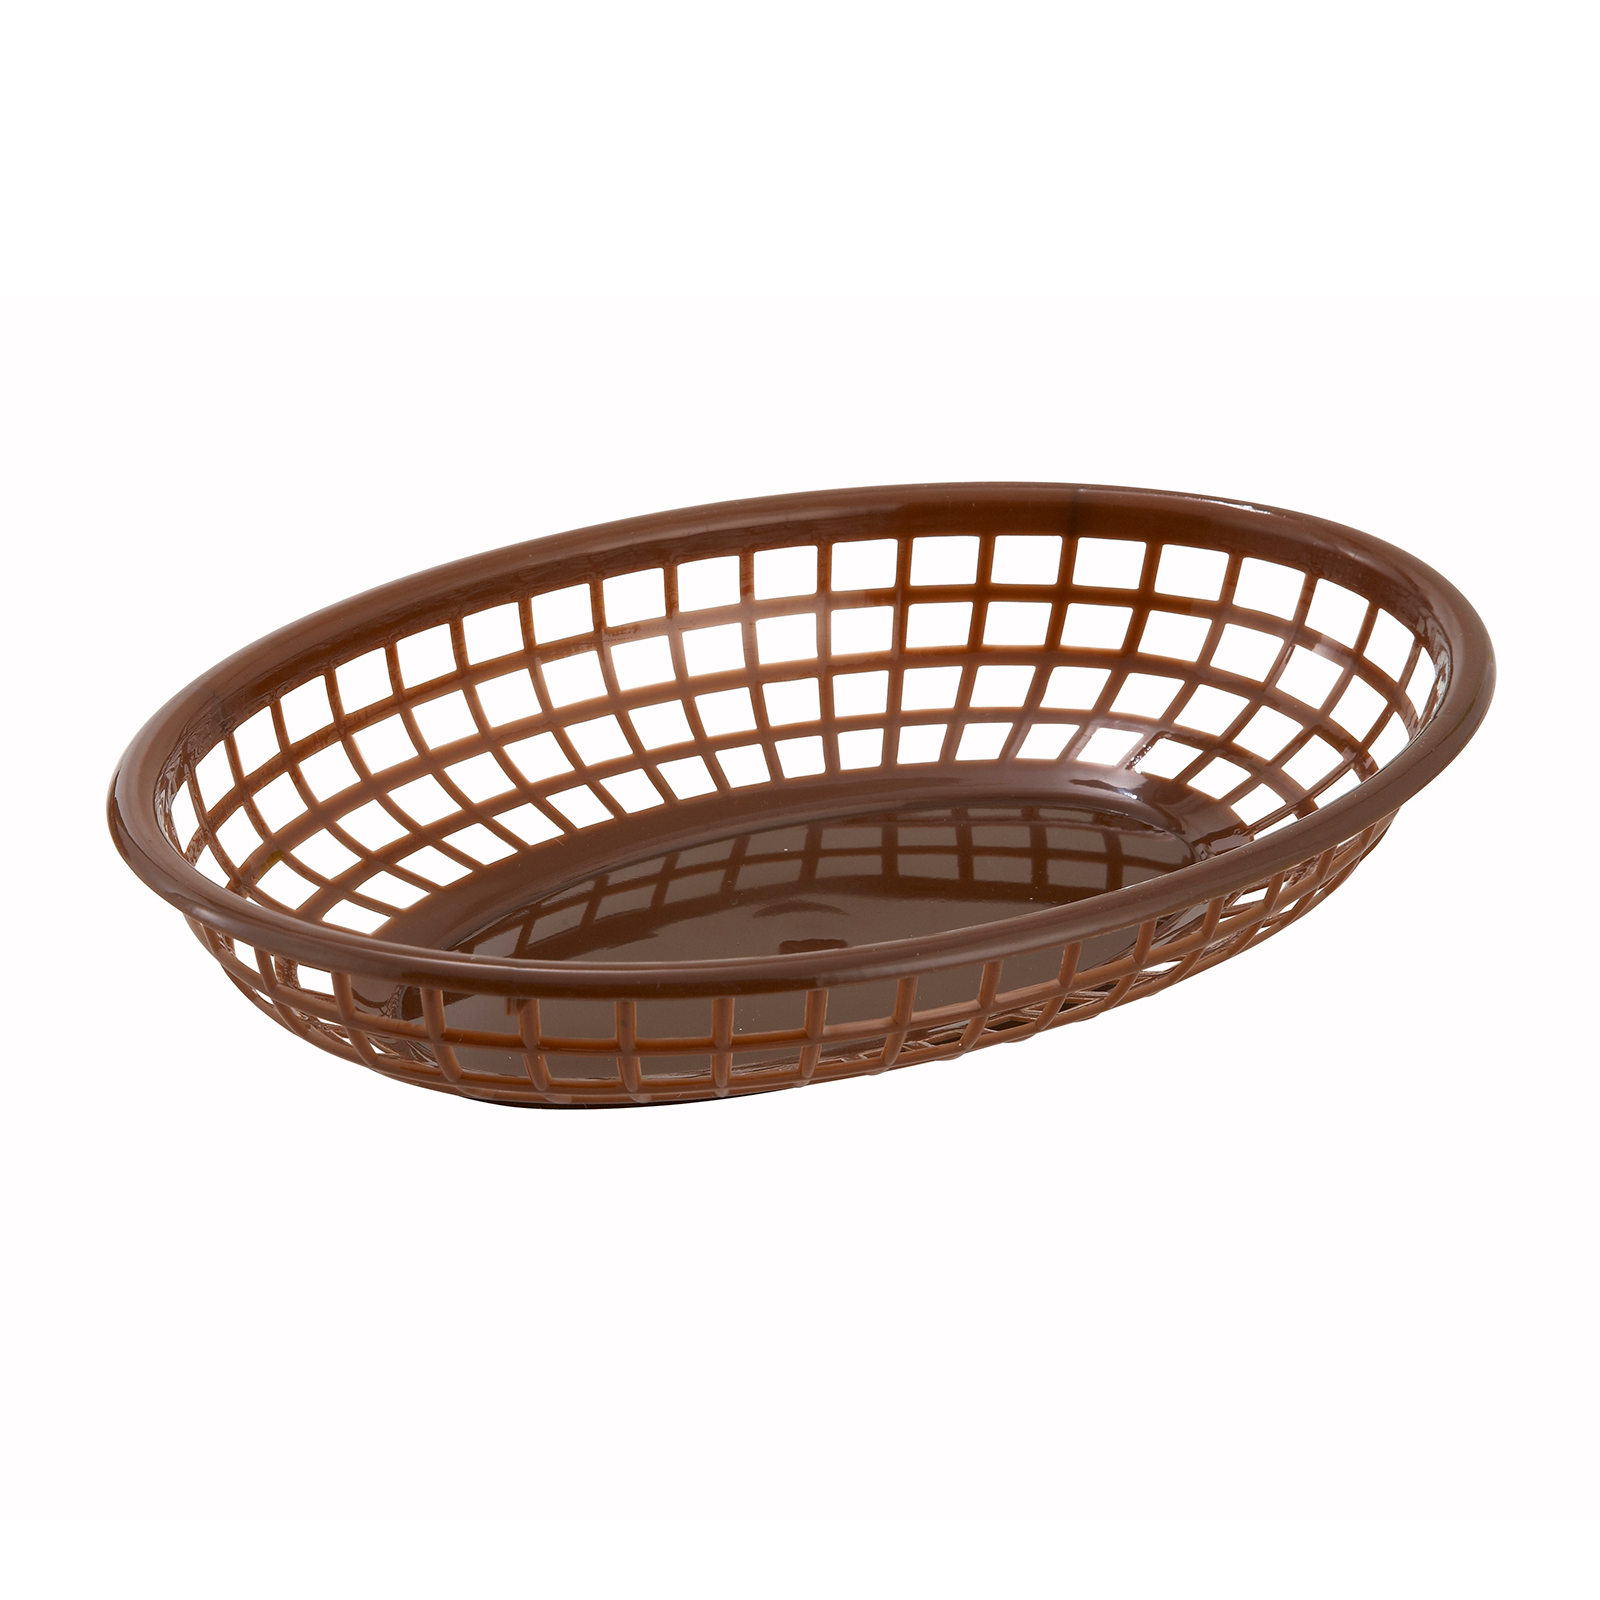 Winco PFB-10B basket, fast food